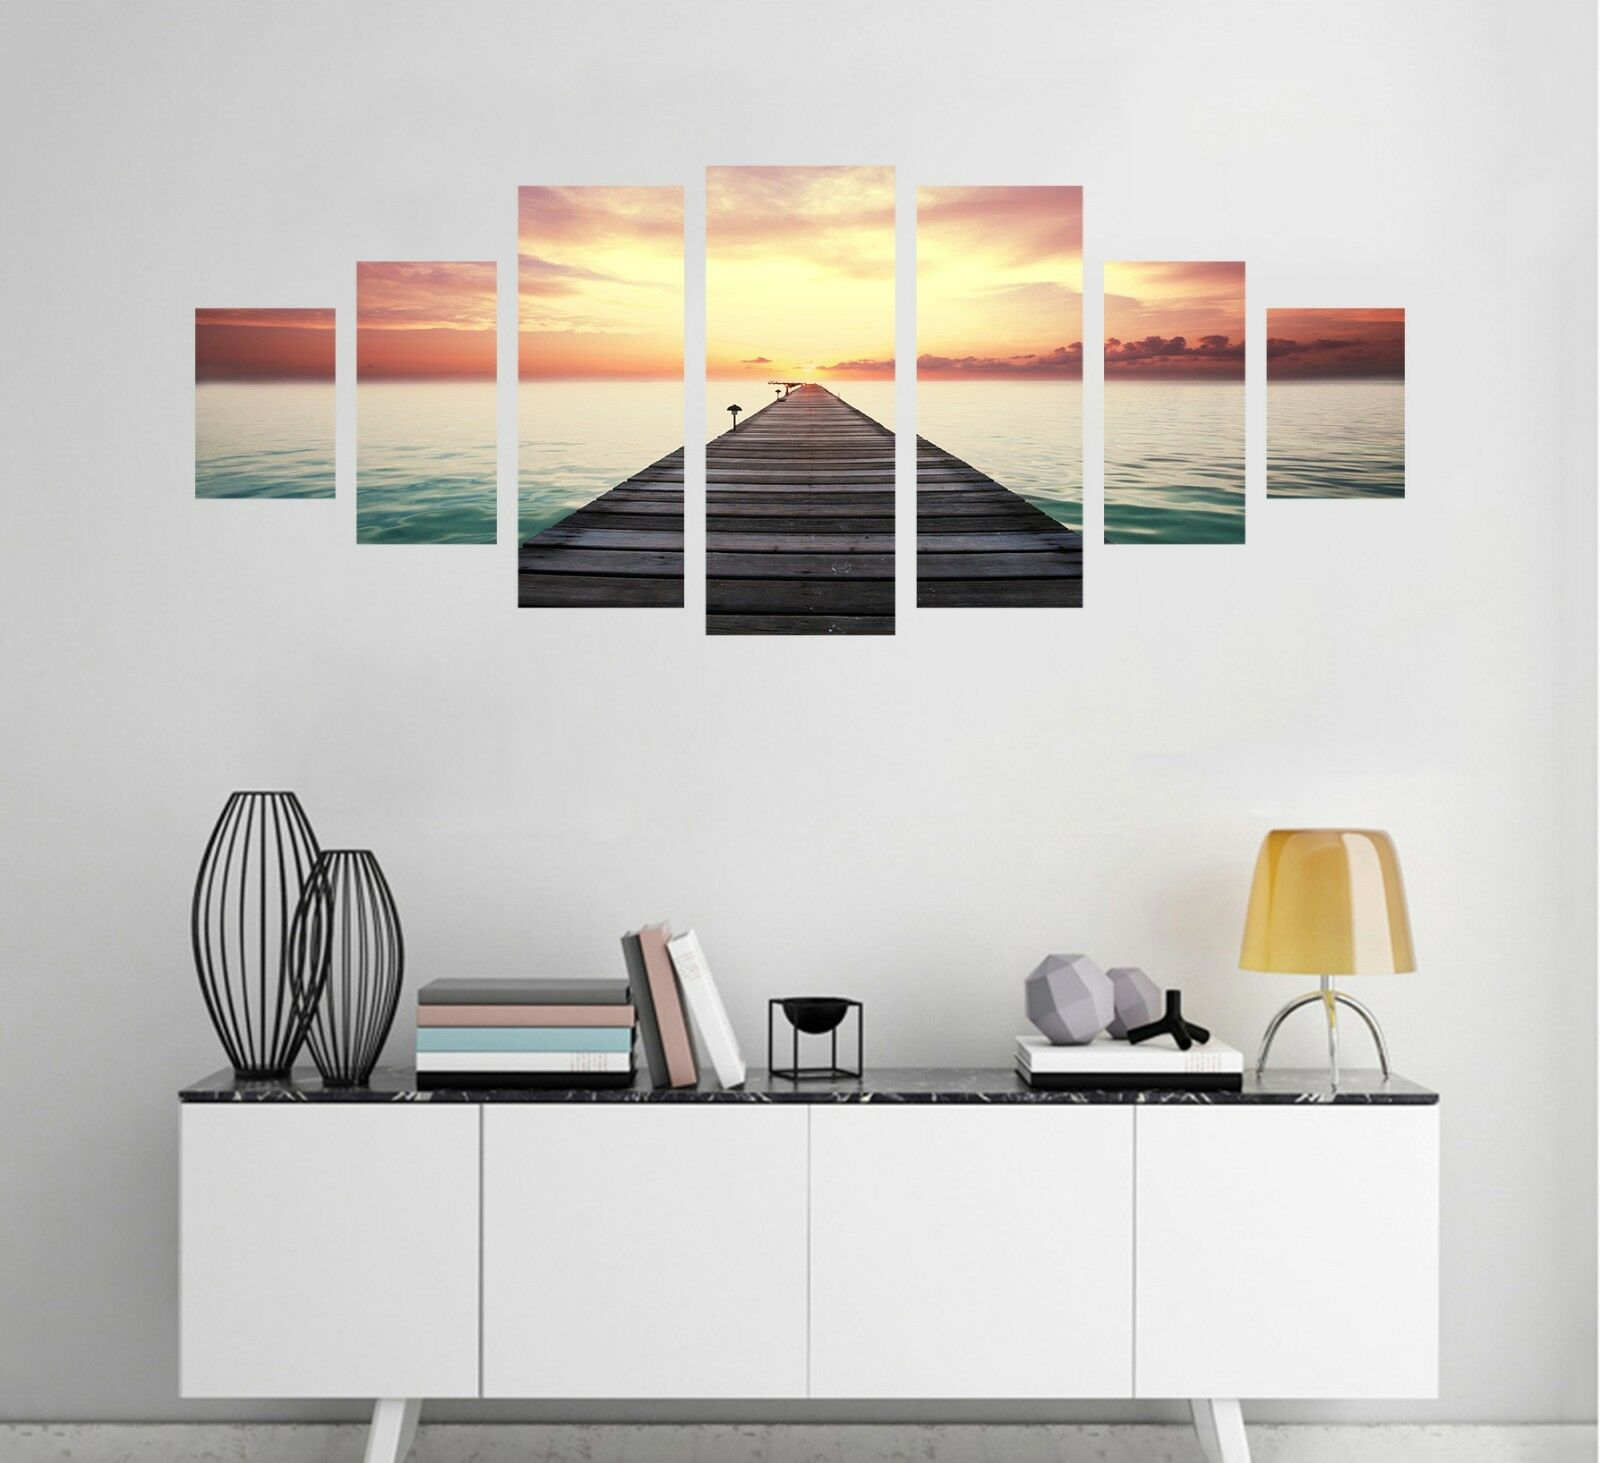 3D Dusk Bridge Sky 83 Unframed Drucken Wand Papier Decal Wand Deco Innen AJ Jenny